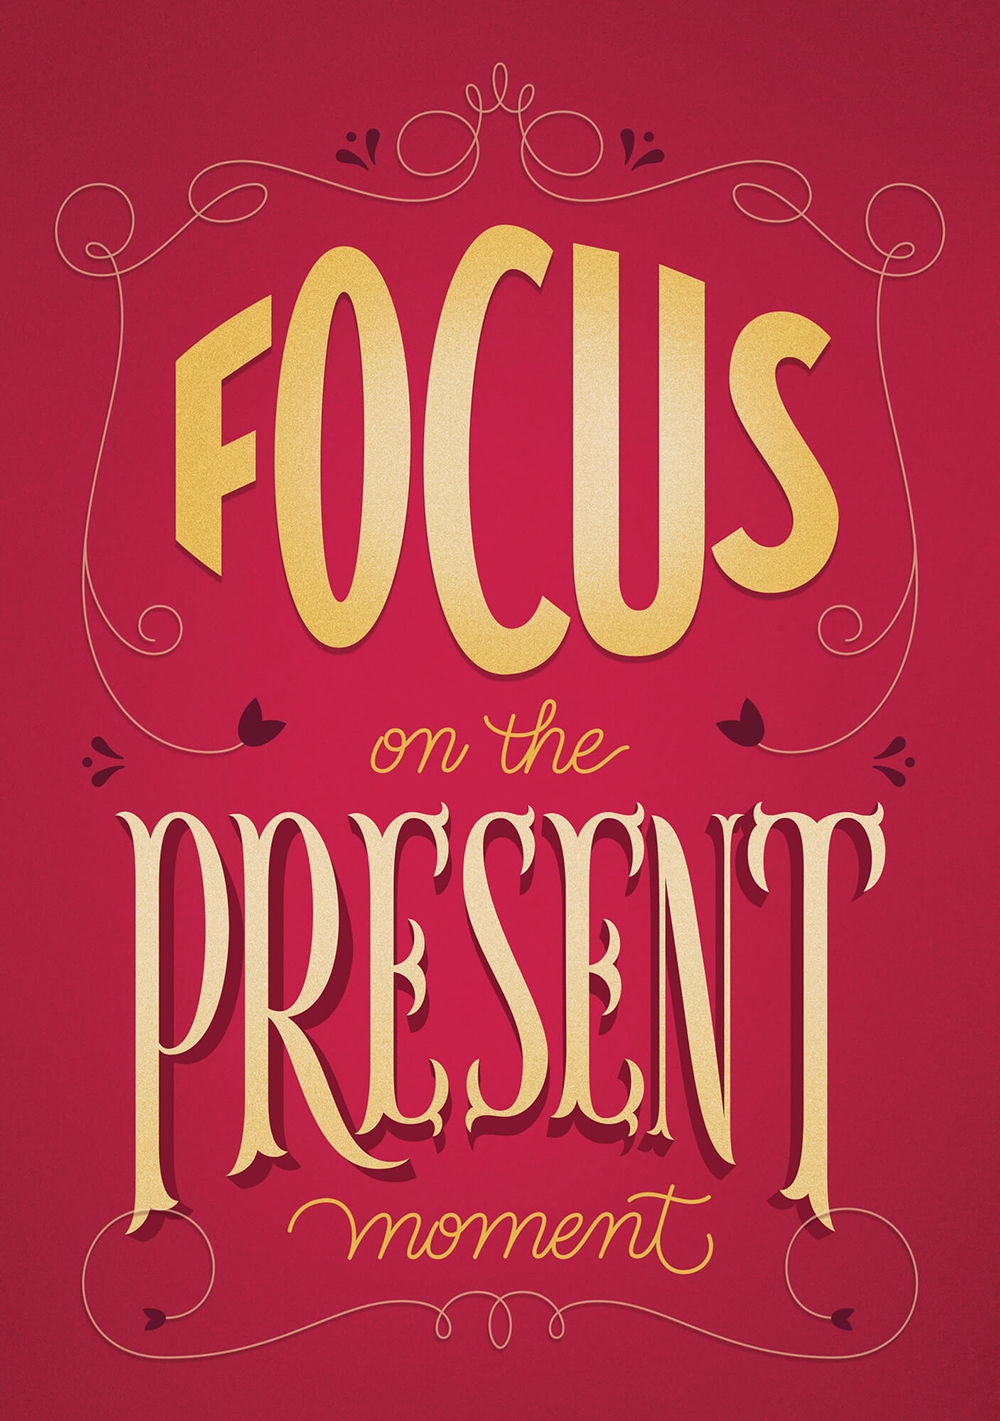 FocusOnThePresent-FINAL_menor.jpg